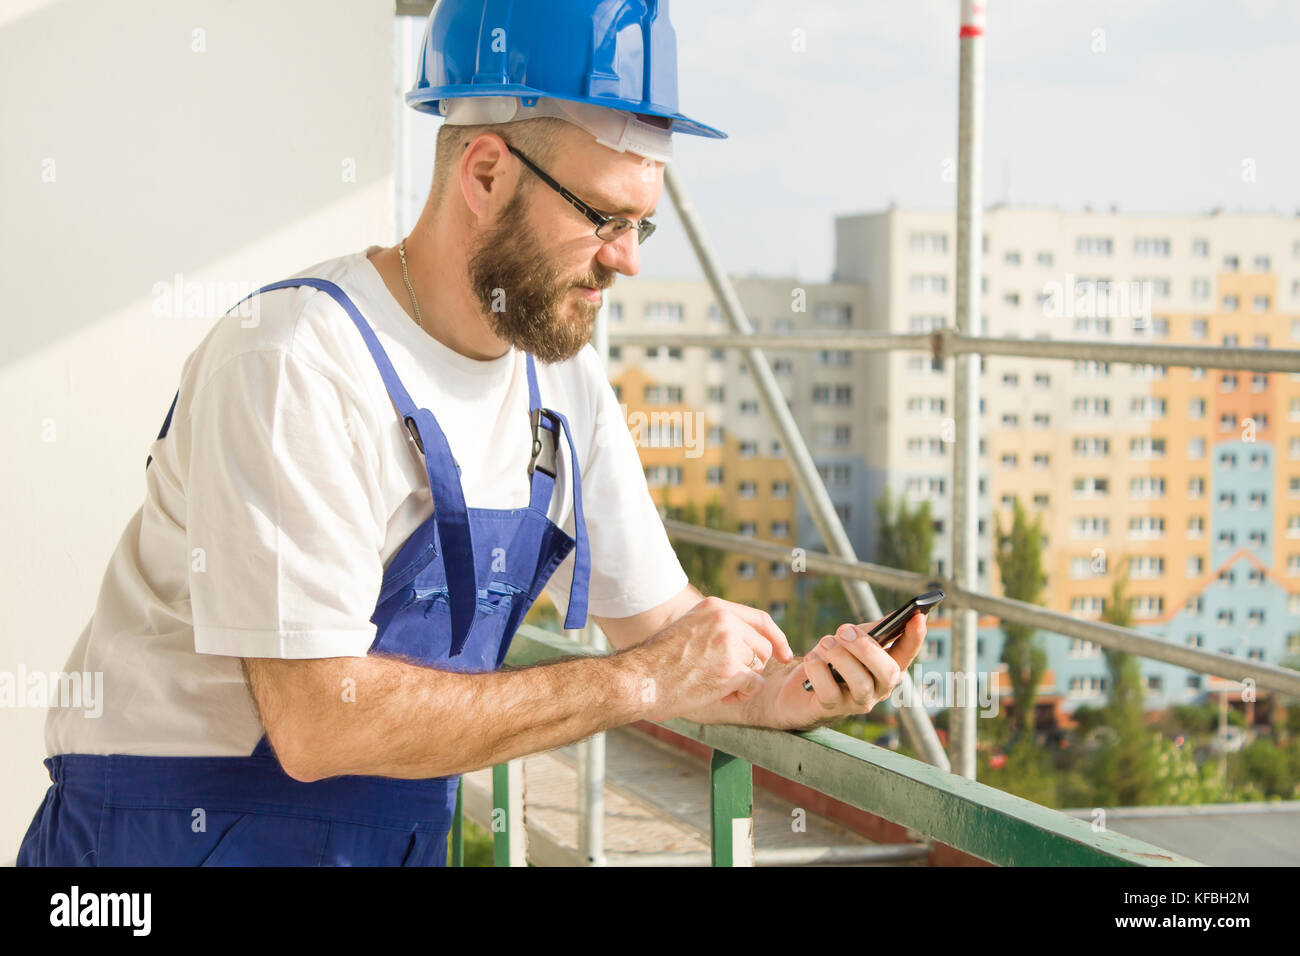 construction worker in work wear and a helmet holding a mobile phone in his hand and dialing a number. Work at high - Stock Image